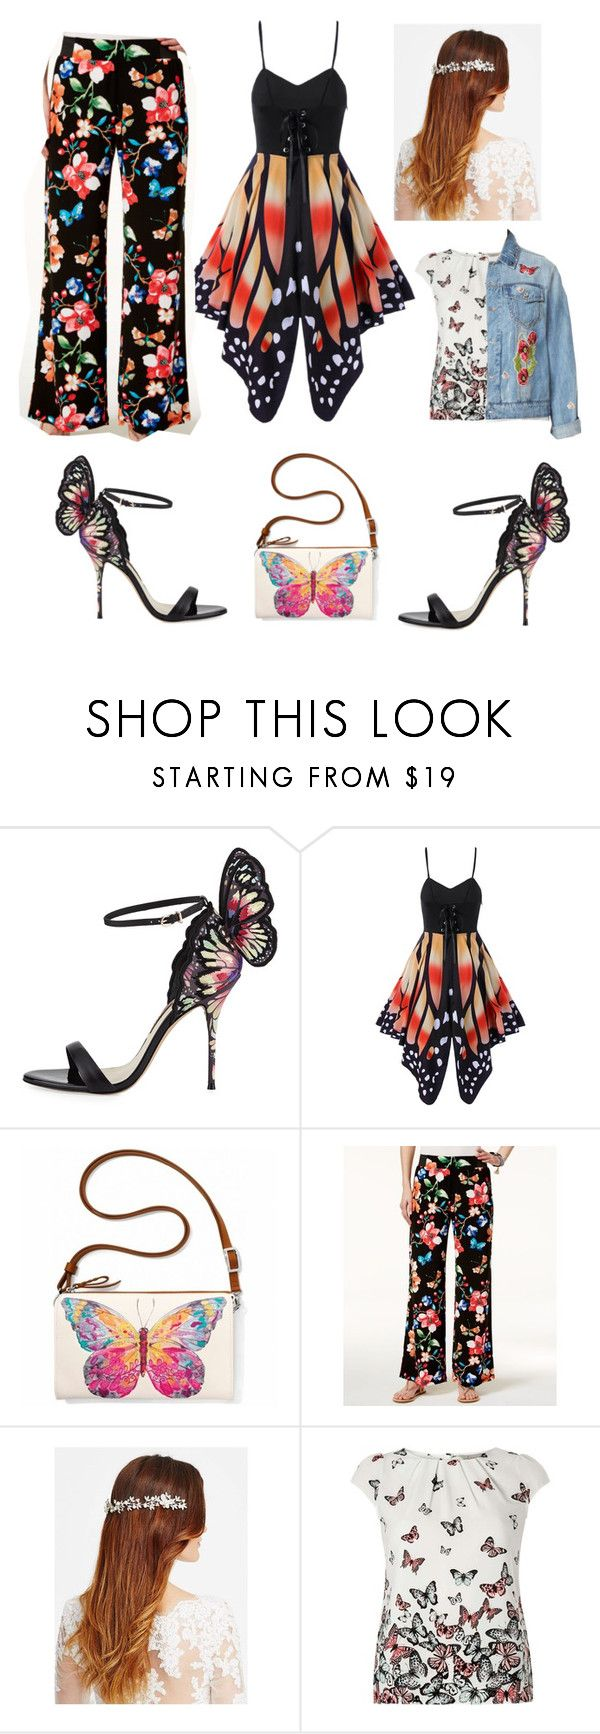 """""""butterfly"""" by bunnyboo2004 ❤ liked on Polyvore featuring Sophia Webster, Brighton, INC International Concepts, Jon Richard, Billie & Blossom, Bagatelle and plus size clothing"""